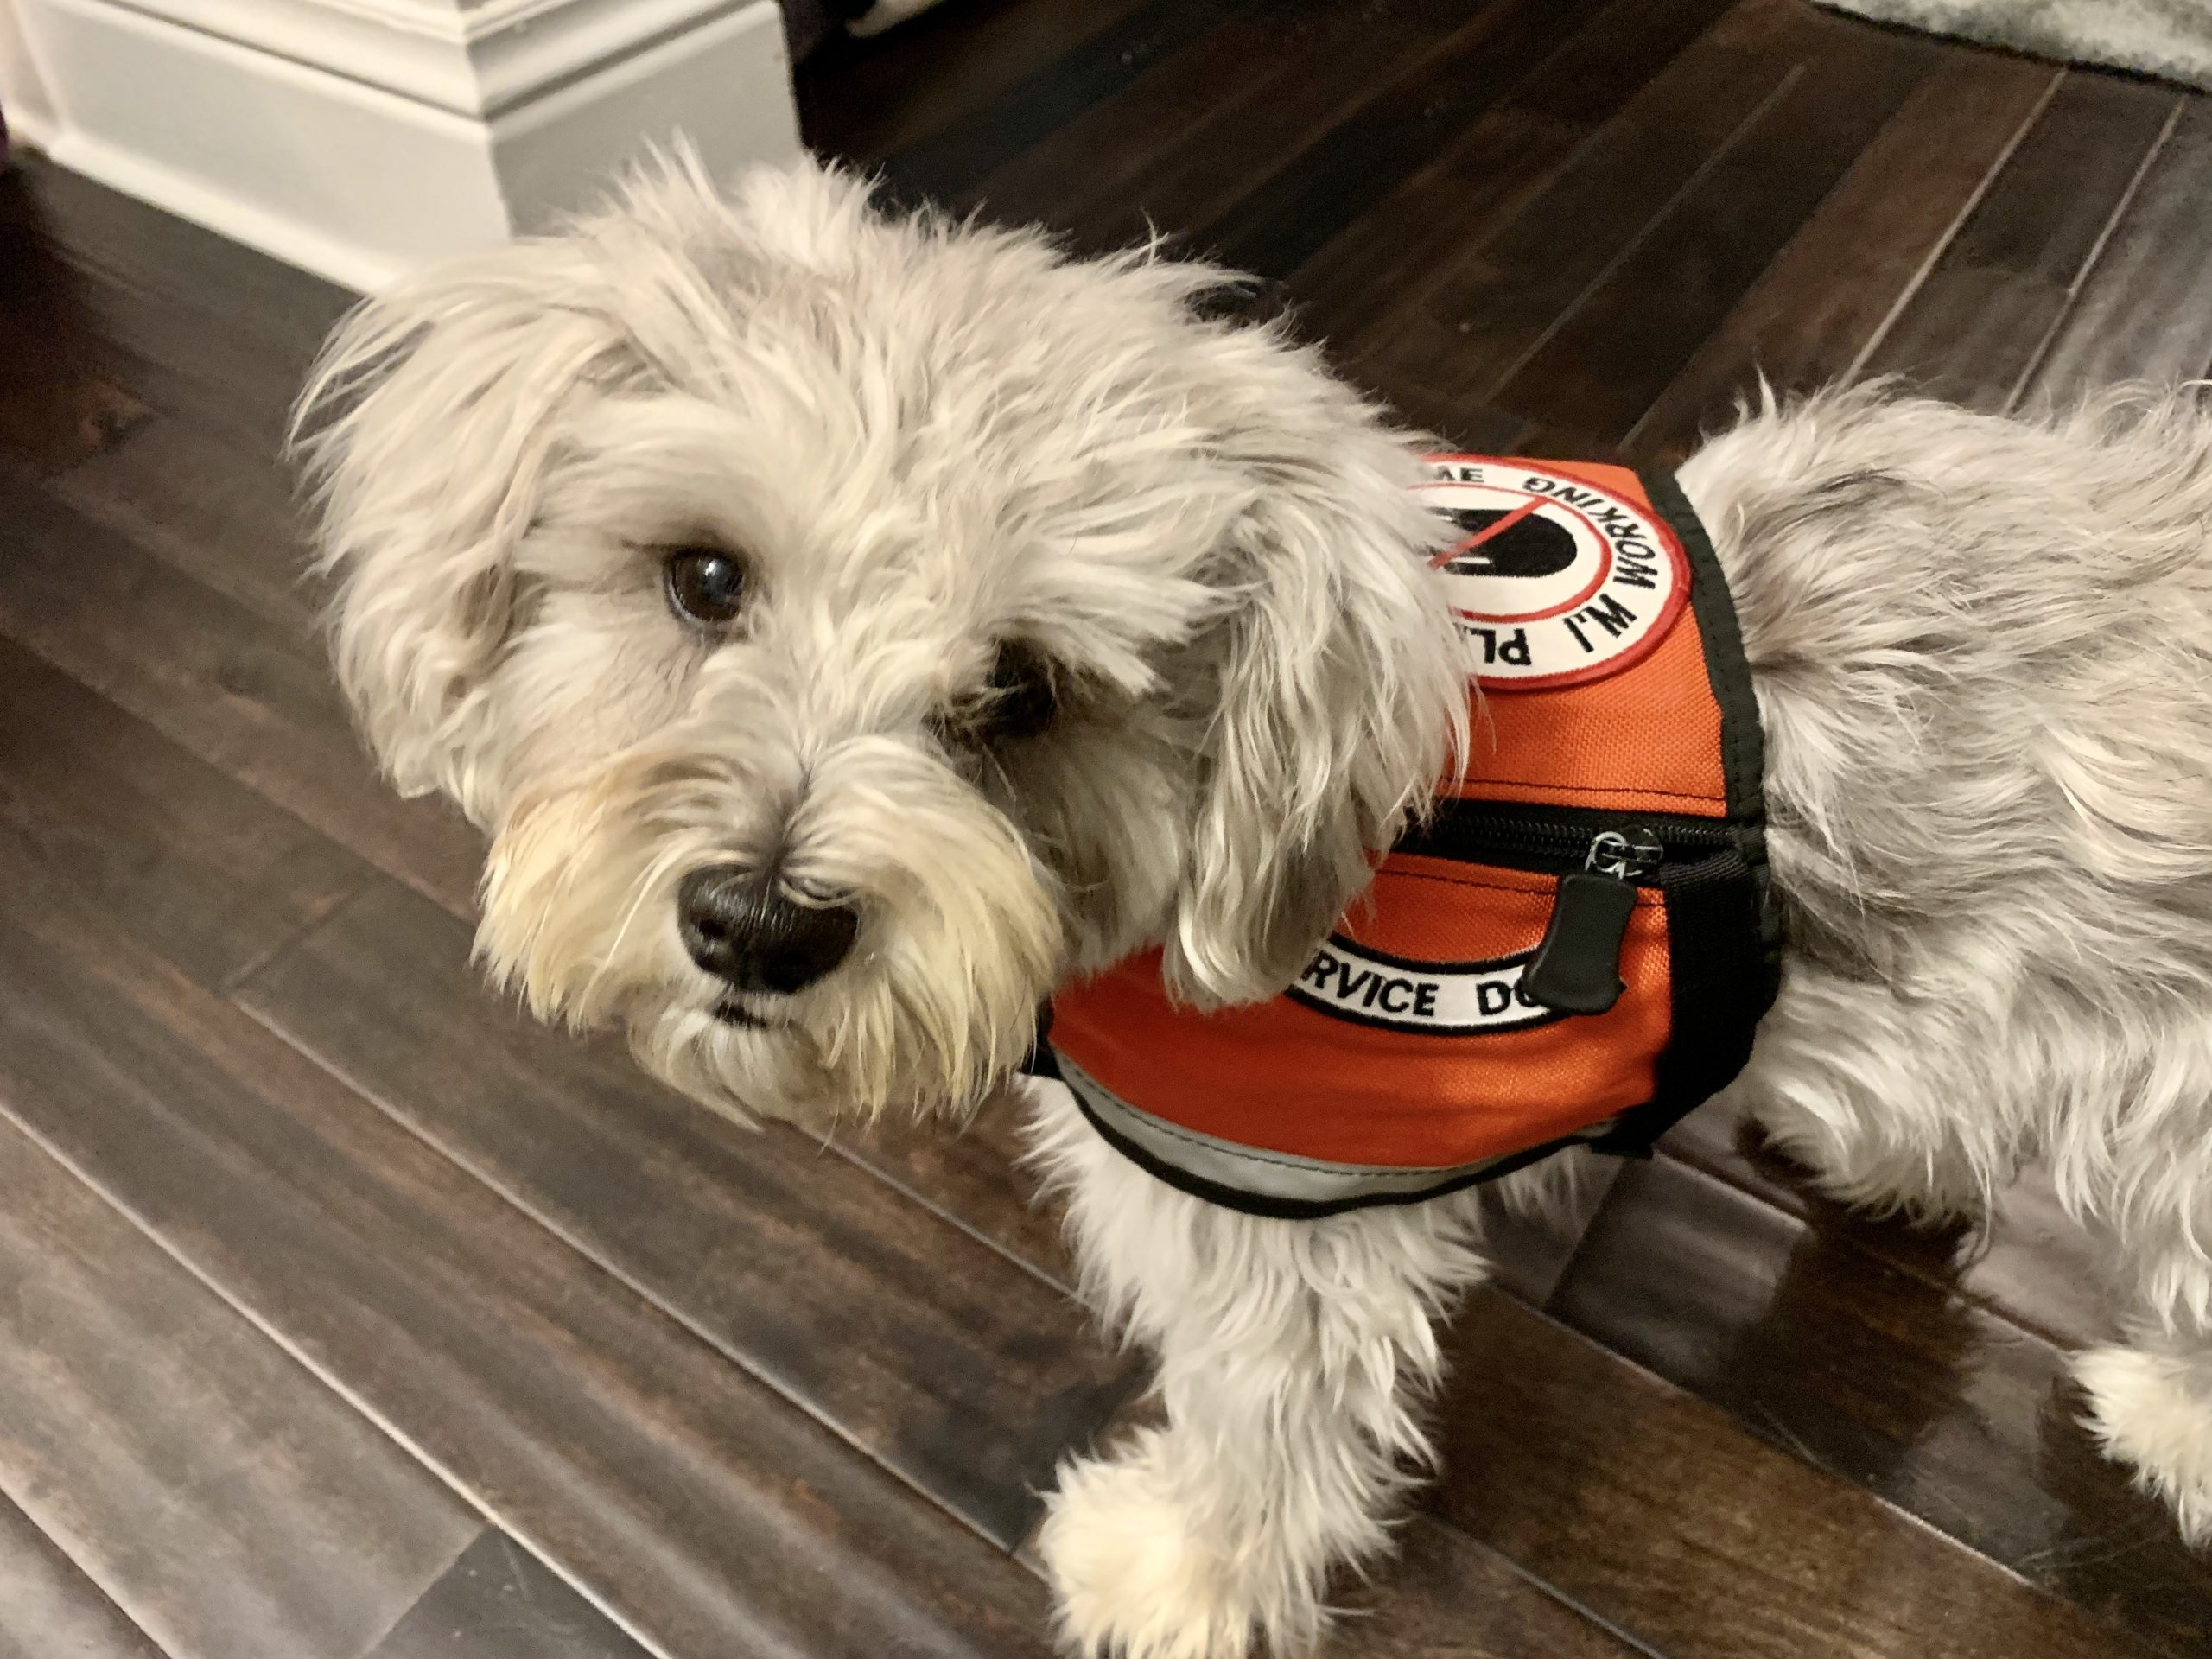 How Service Dogs Help With Epileptic Seizures The Pooch Coach